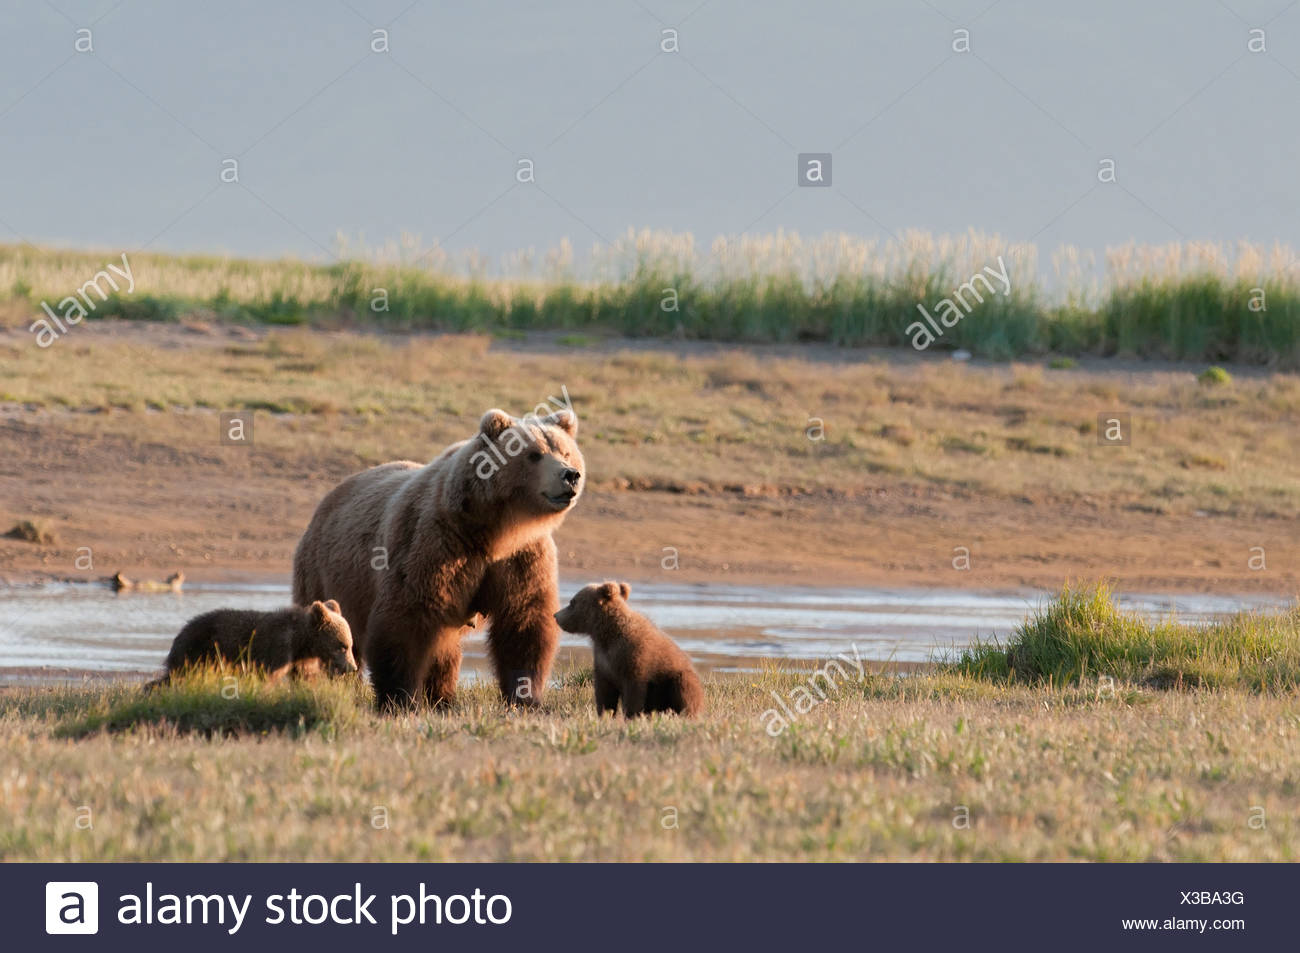 A Grizzly Bear (Ursus Arctos Horribilis) With Two Cubs Crossing The River; Alaska, United States Of America - Stock Image